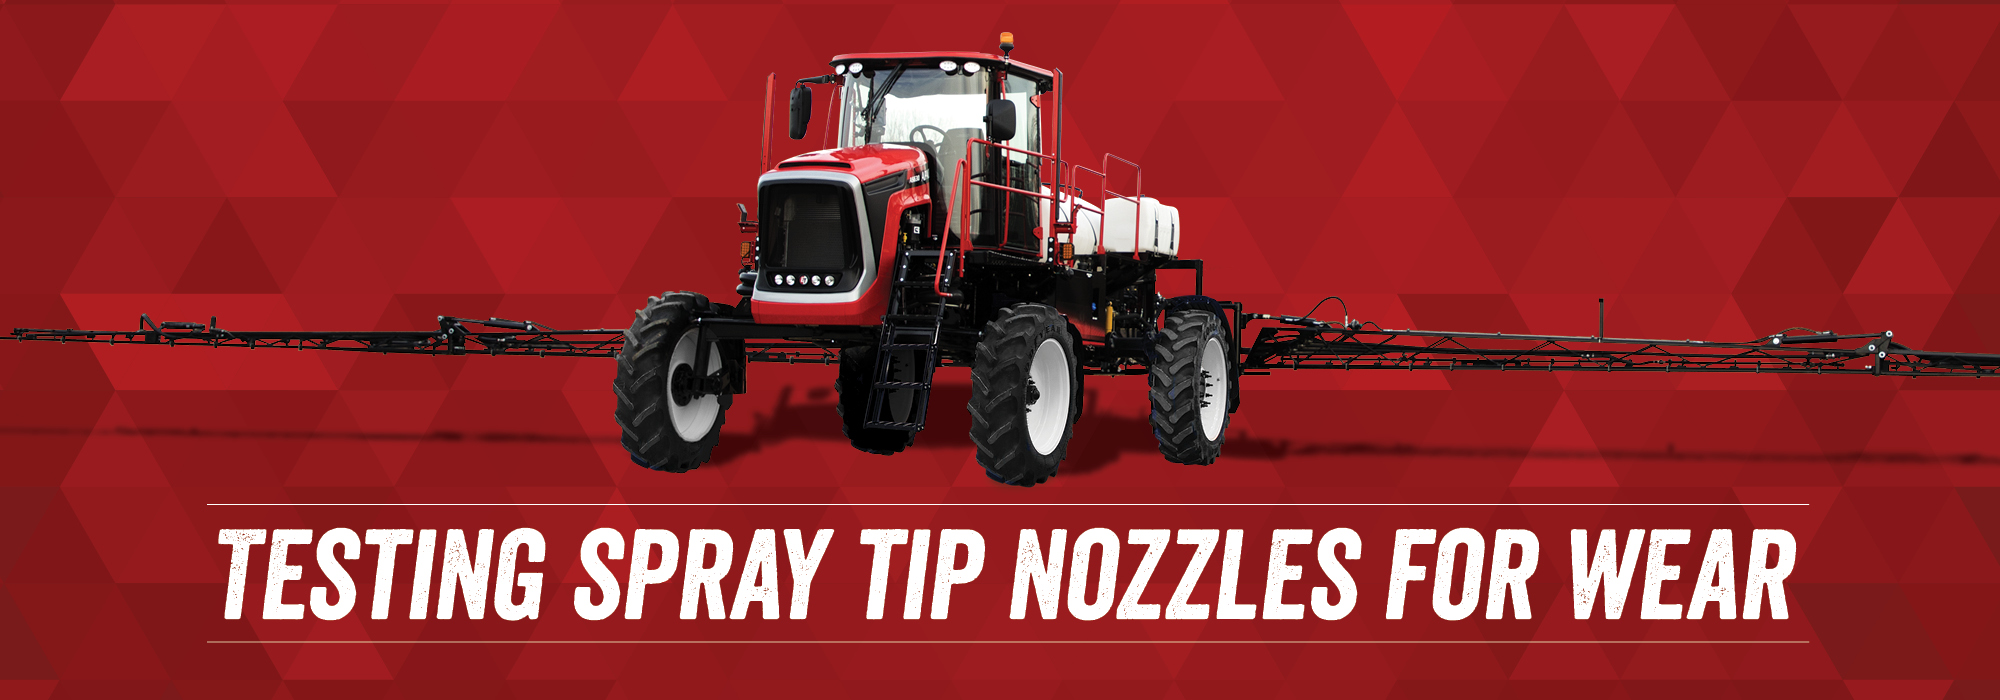 Testing Spray Tip Nozzles for Wear